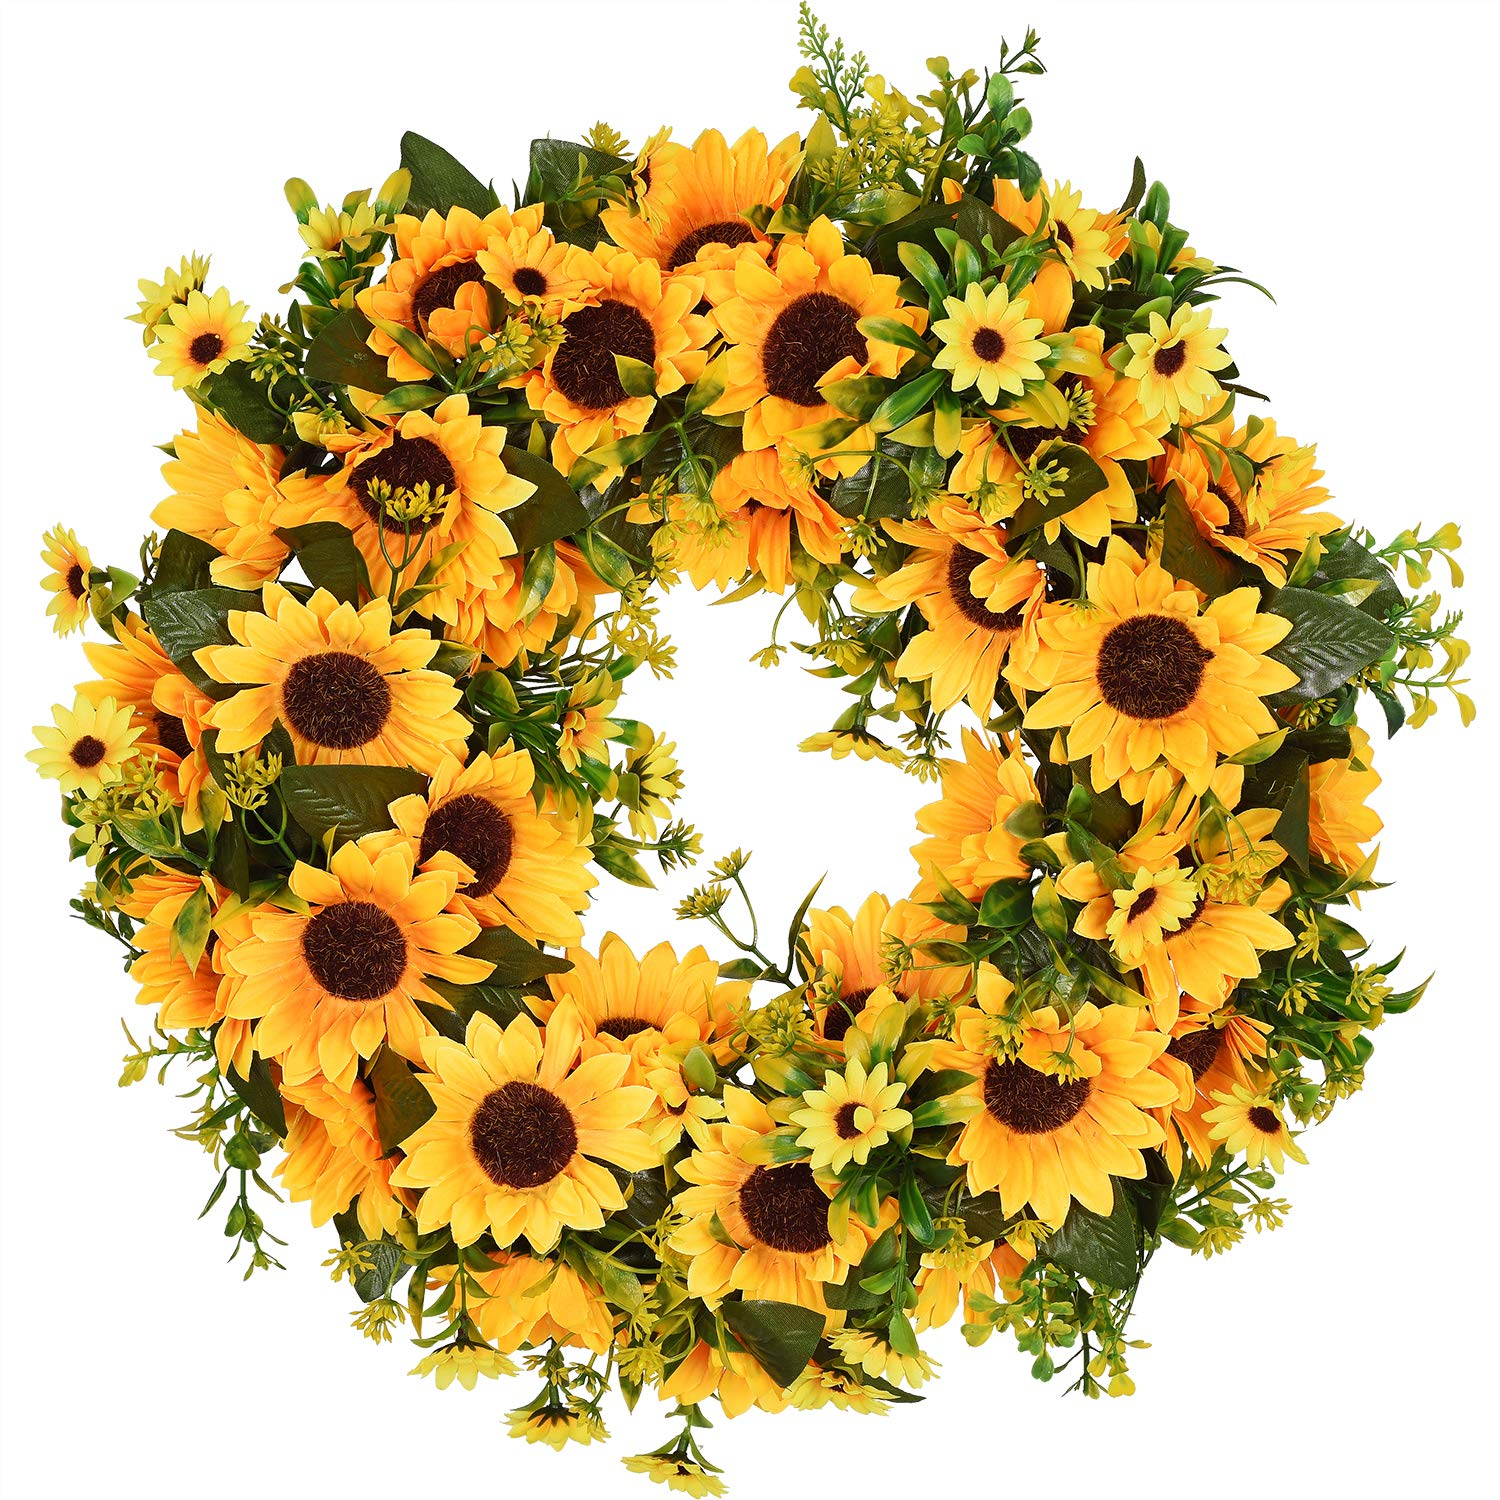 Lvydec Artificial Sunflower Summer Wreath - 16 Inch Decorative Fake Flower Wreath with Yellow Sunflower and Green Leaves for Front Door Indoor Wall Décor by Lvydec